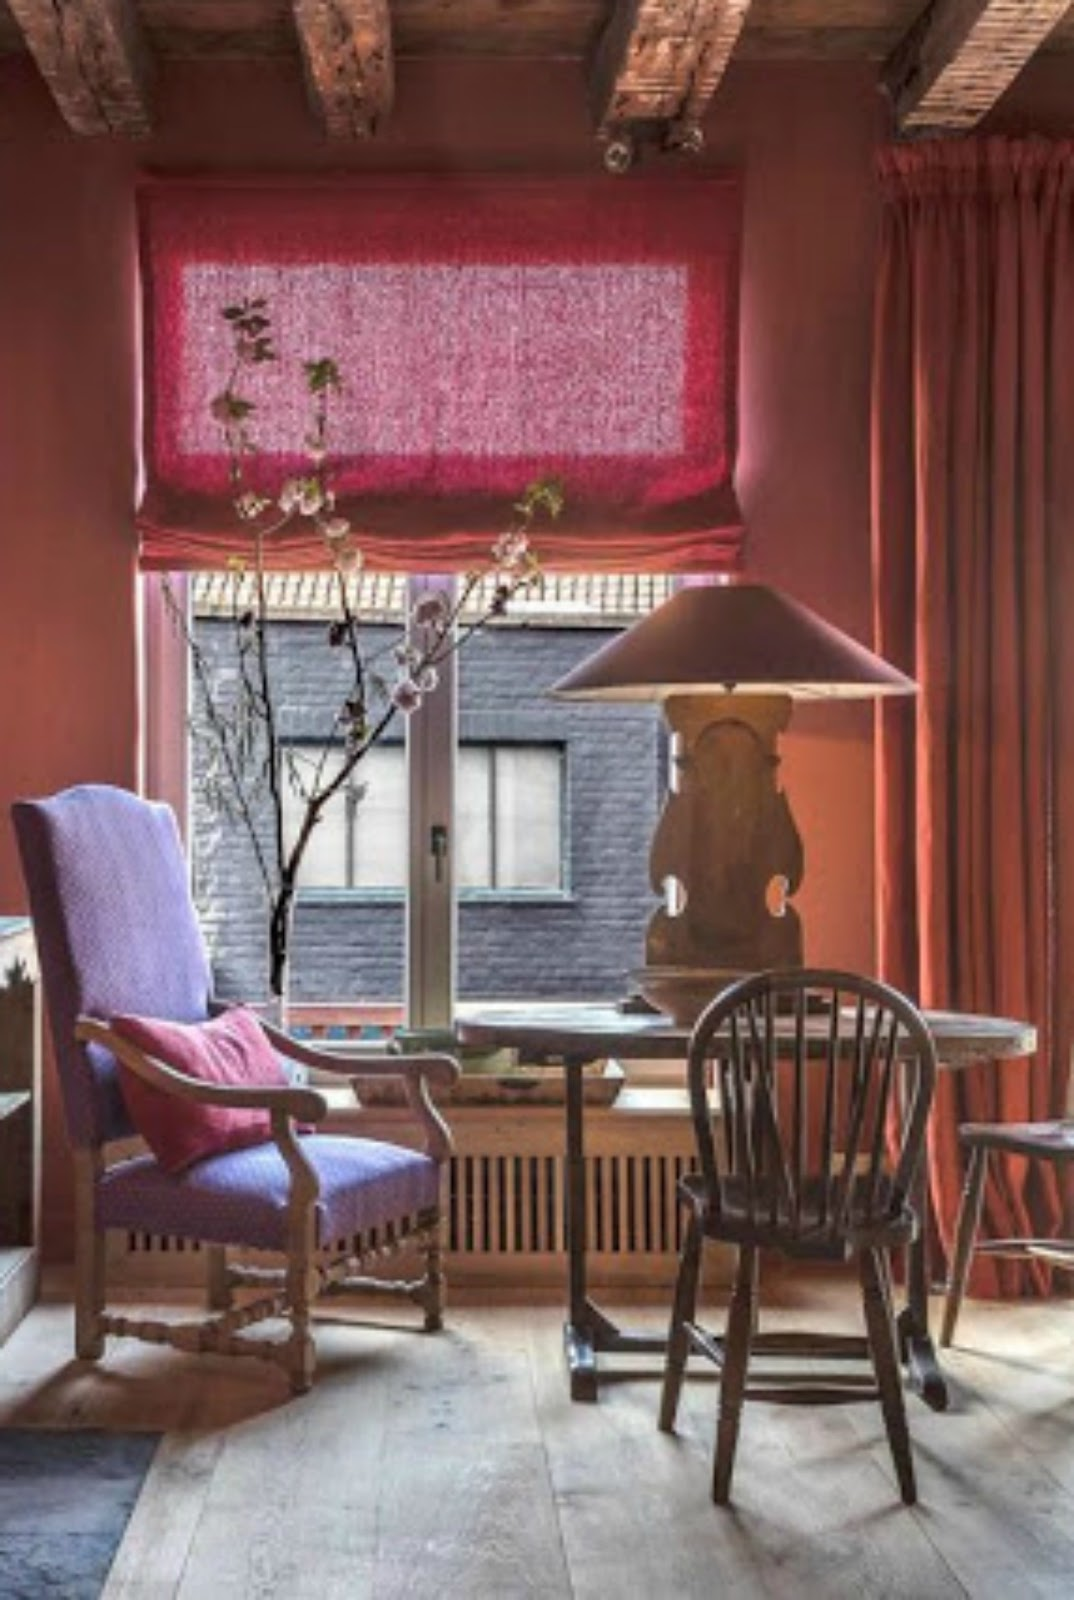 Rich and colorful interior design in this Belgian guesthouse - found on Hello Lovely Studio